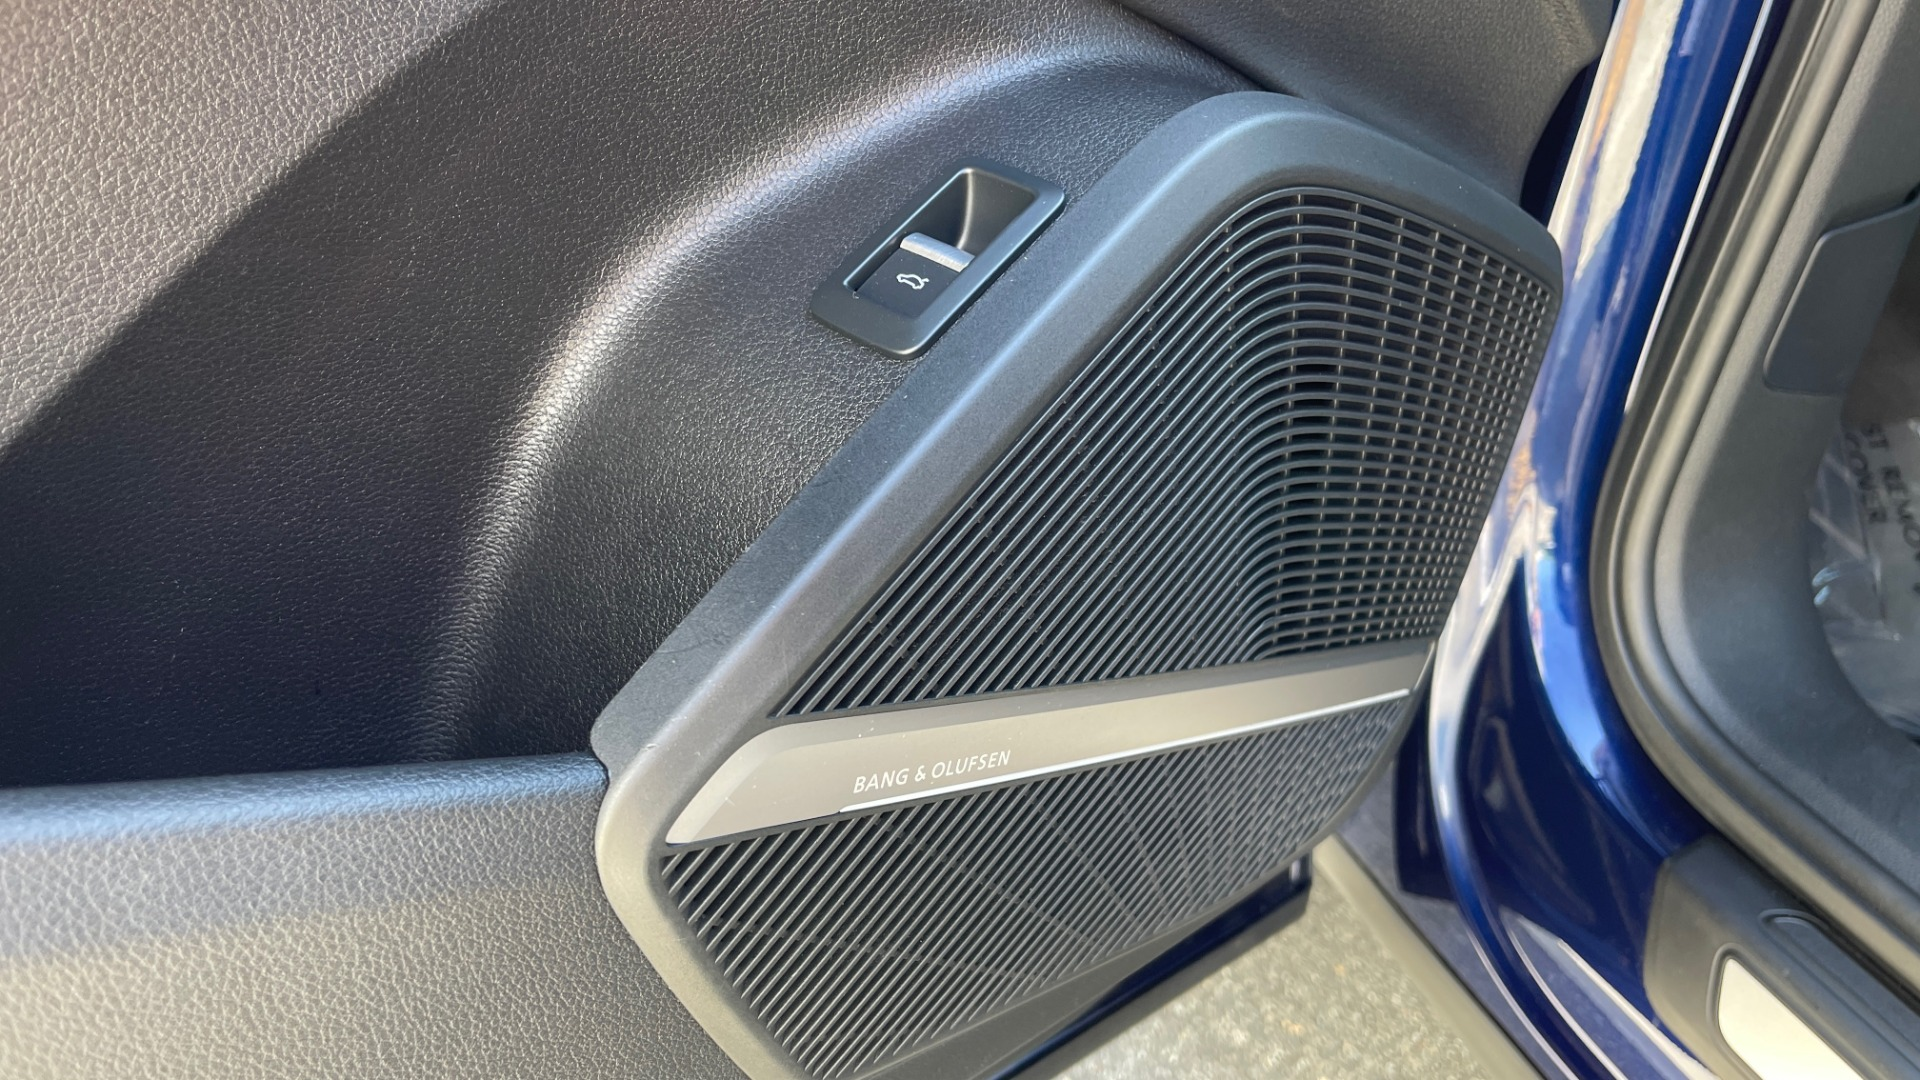 Used 2018 Audi Q5 PREMIUM PLUS / NAV / PANO-ROOF / PARK SYSTEM / REARVIEW for sale $33,695 at Formula Imports in Charlotte NC 28227 24